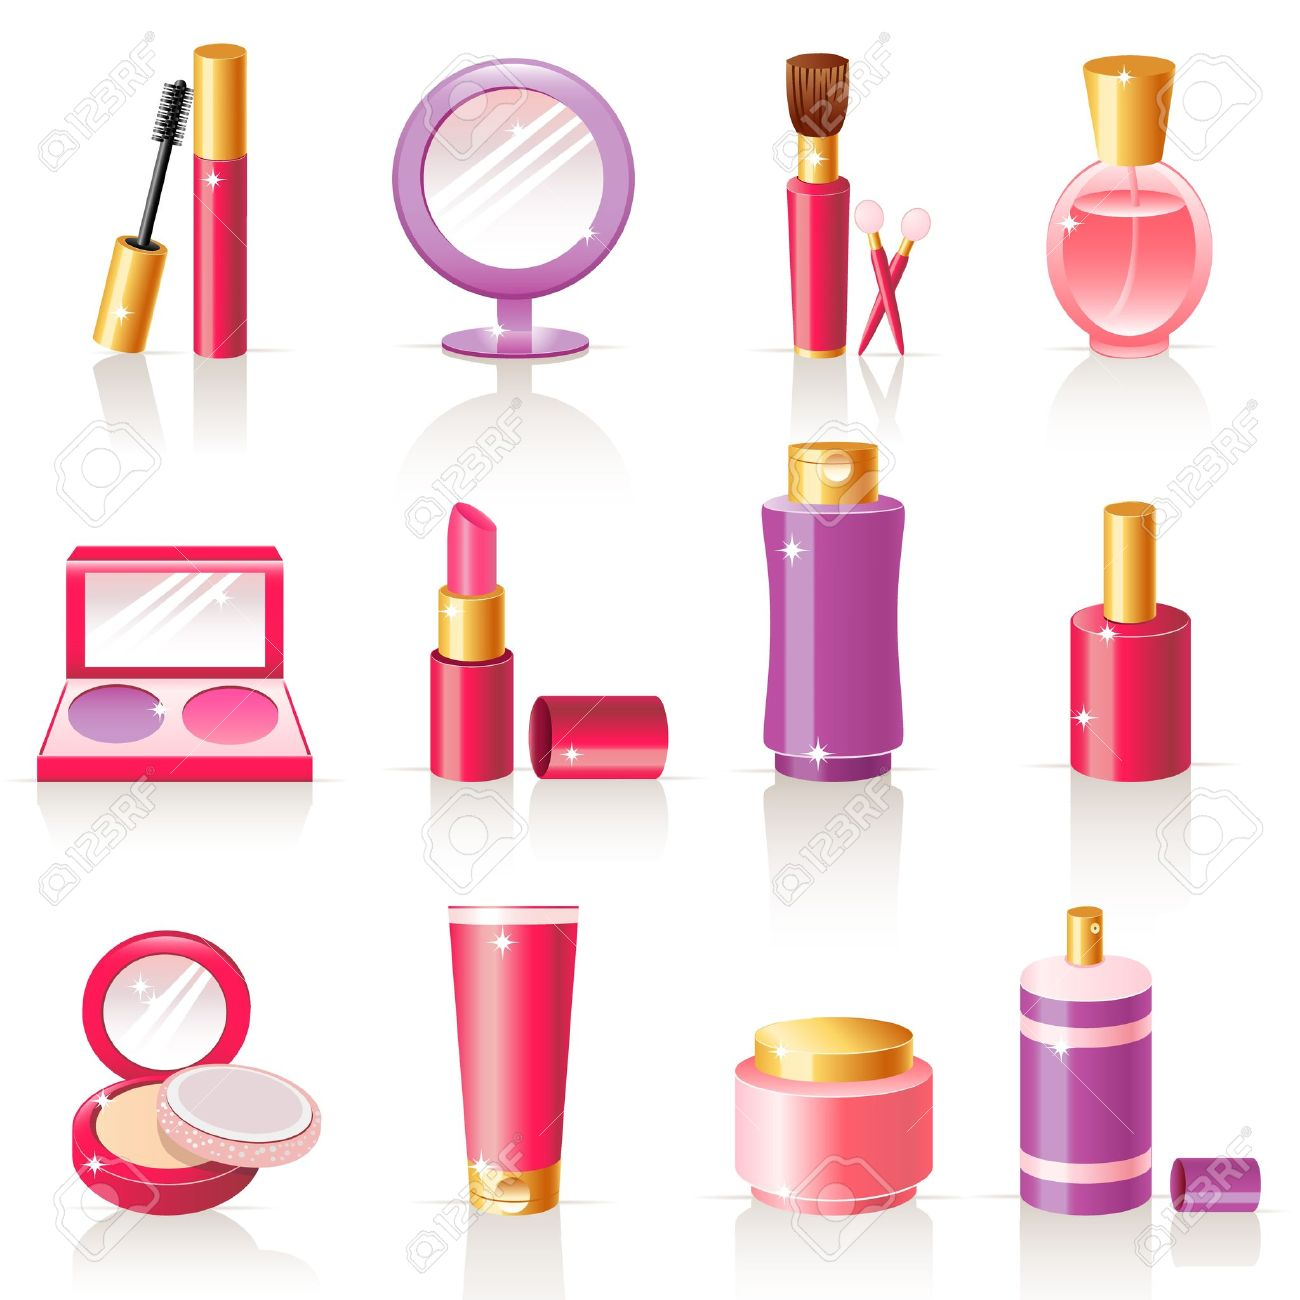 cosmetic icons Stock Vector - 12029440